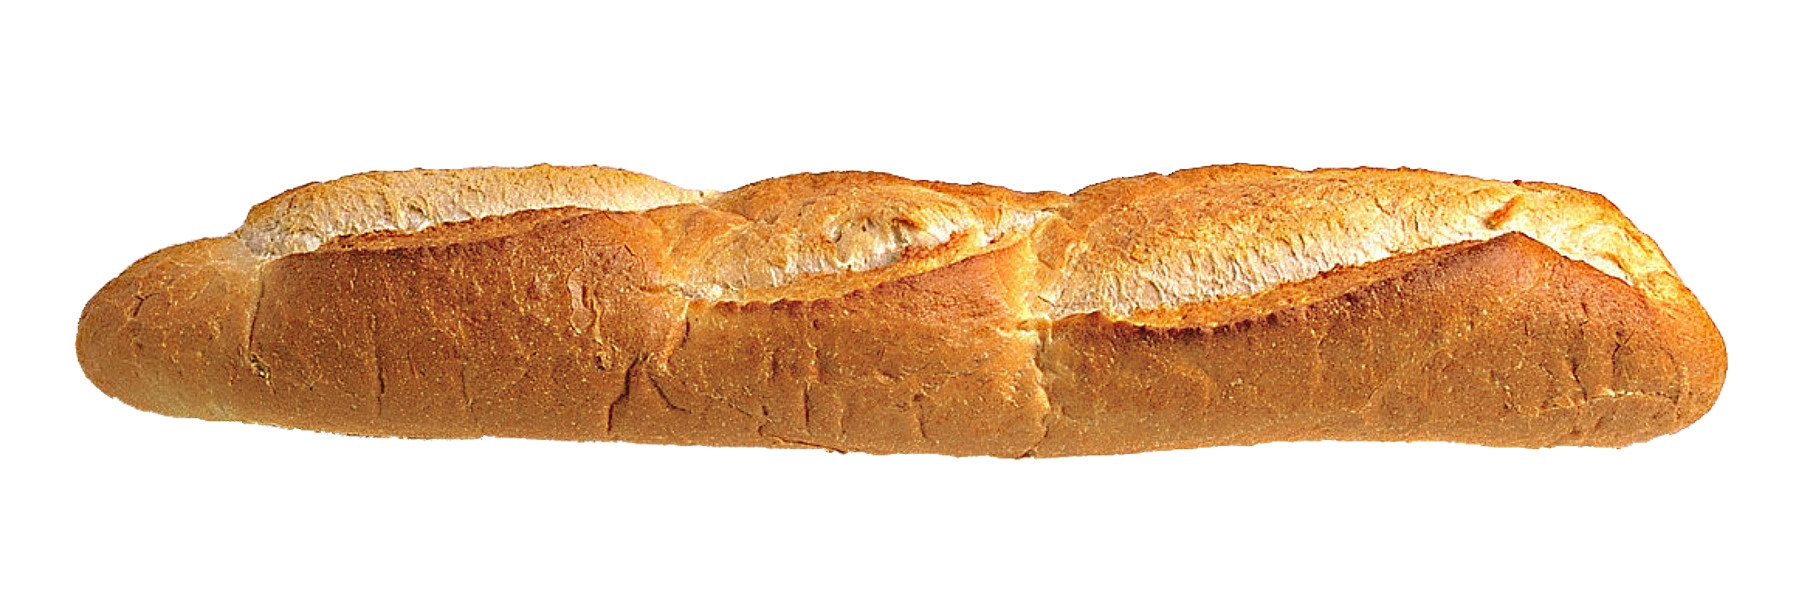 Long image purepng free. Loaf of bread png clipart black and white